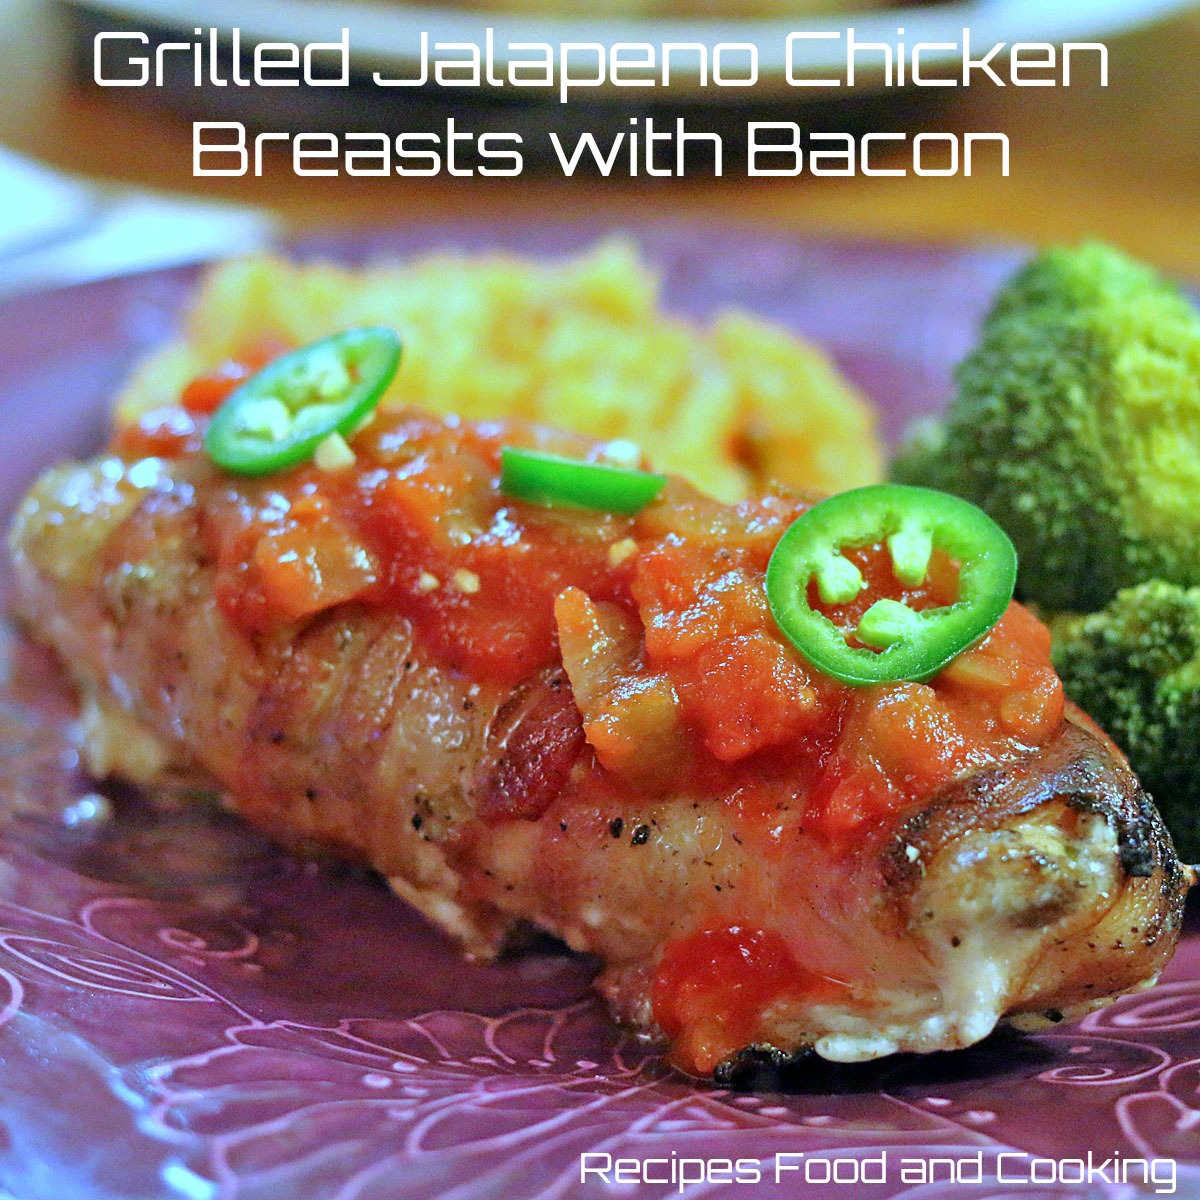 Grilled Jalapeno Chicken Breasts with Bacon